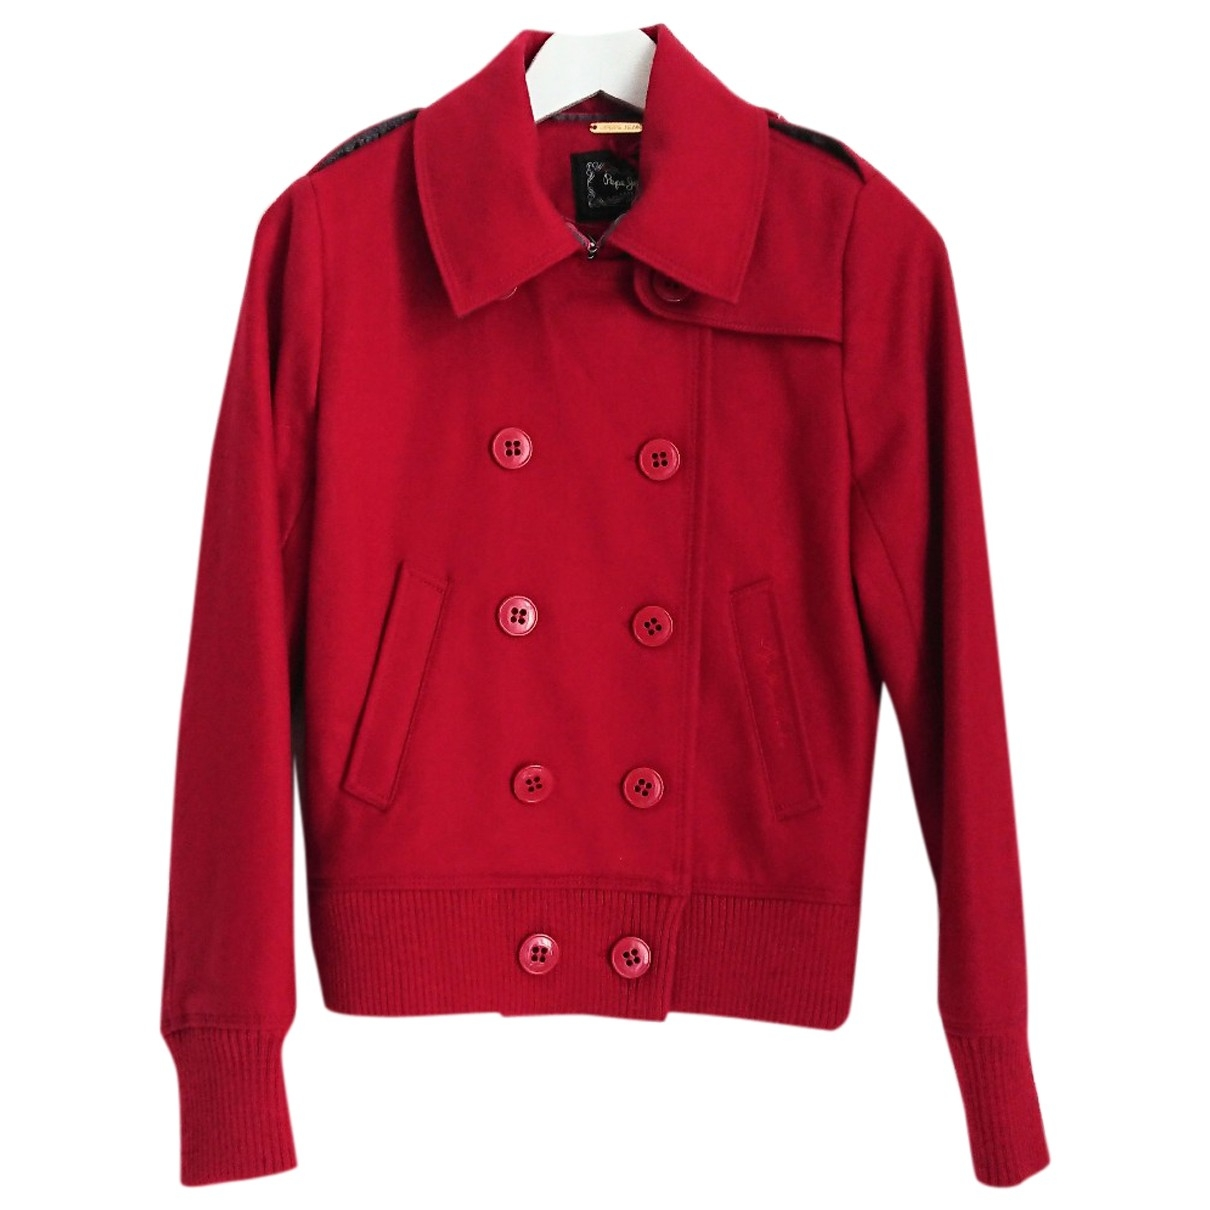 Patrizia Pepe \N Red Wool jacket for Women 36 FR